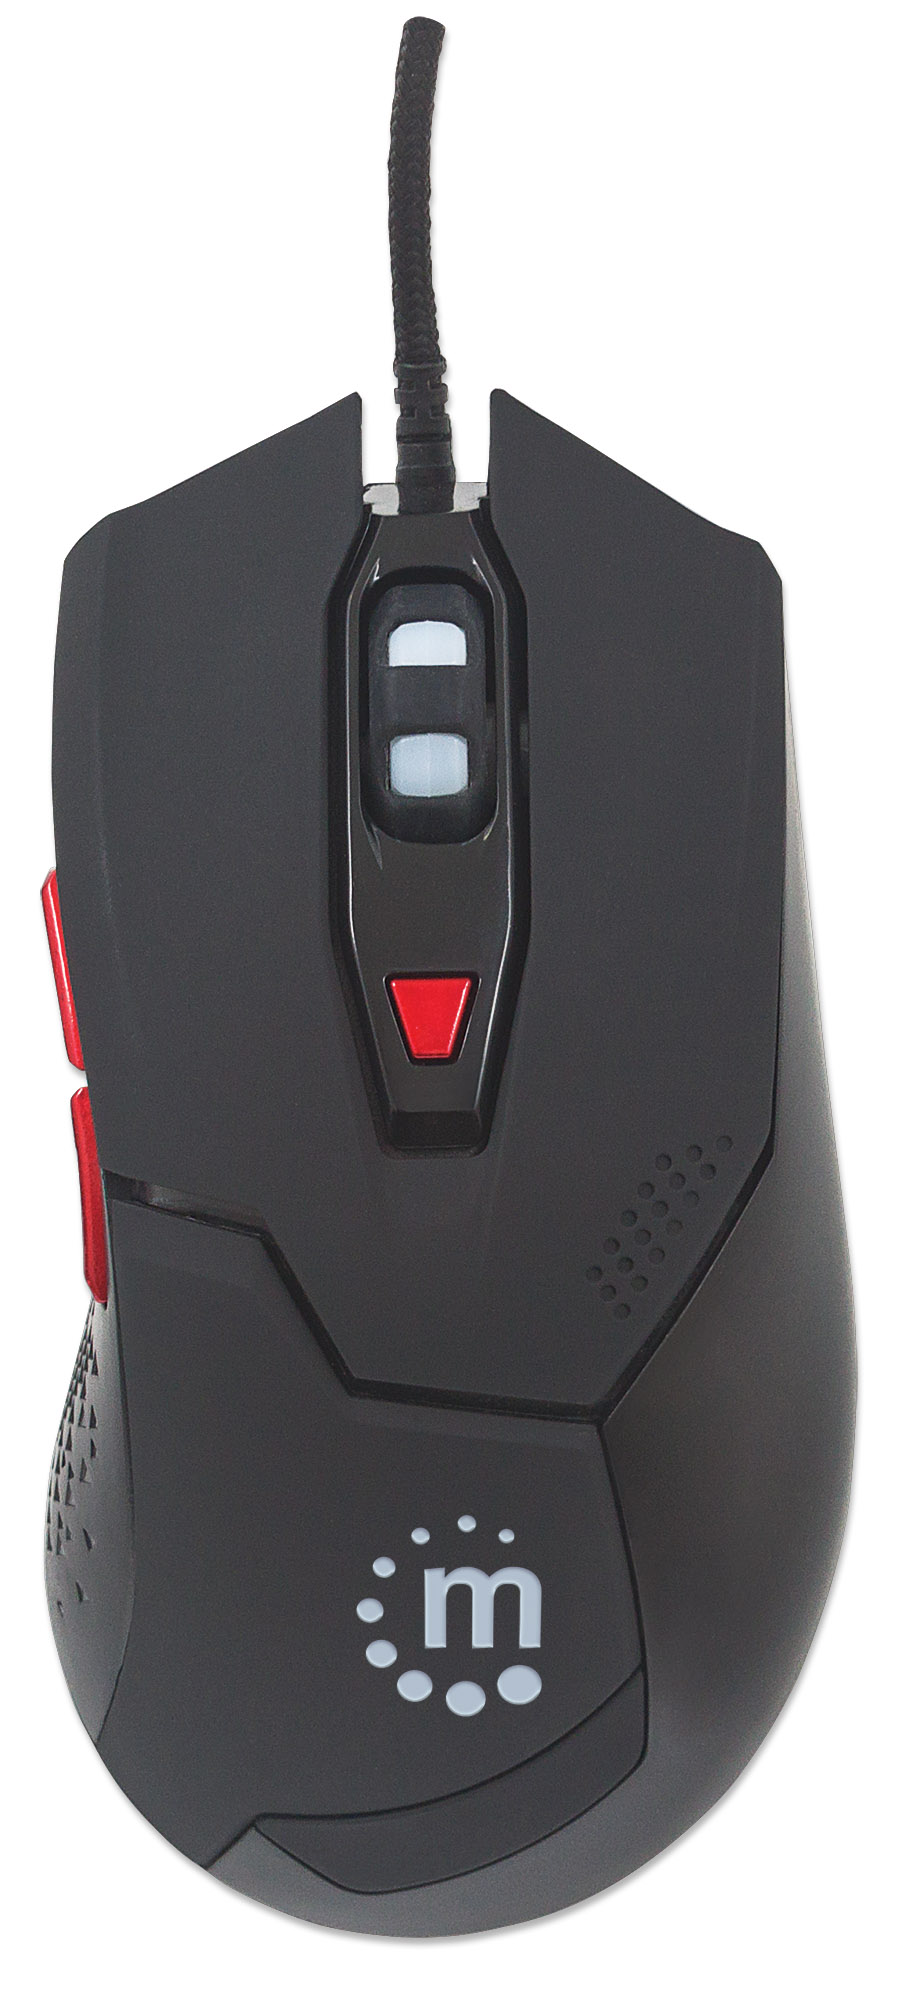 Wired Optical Gaming Mouse with LEDs